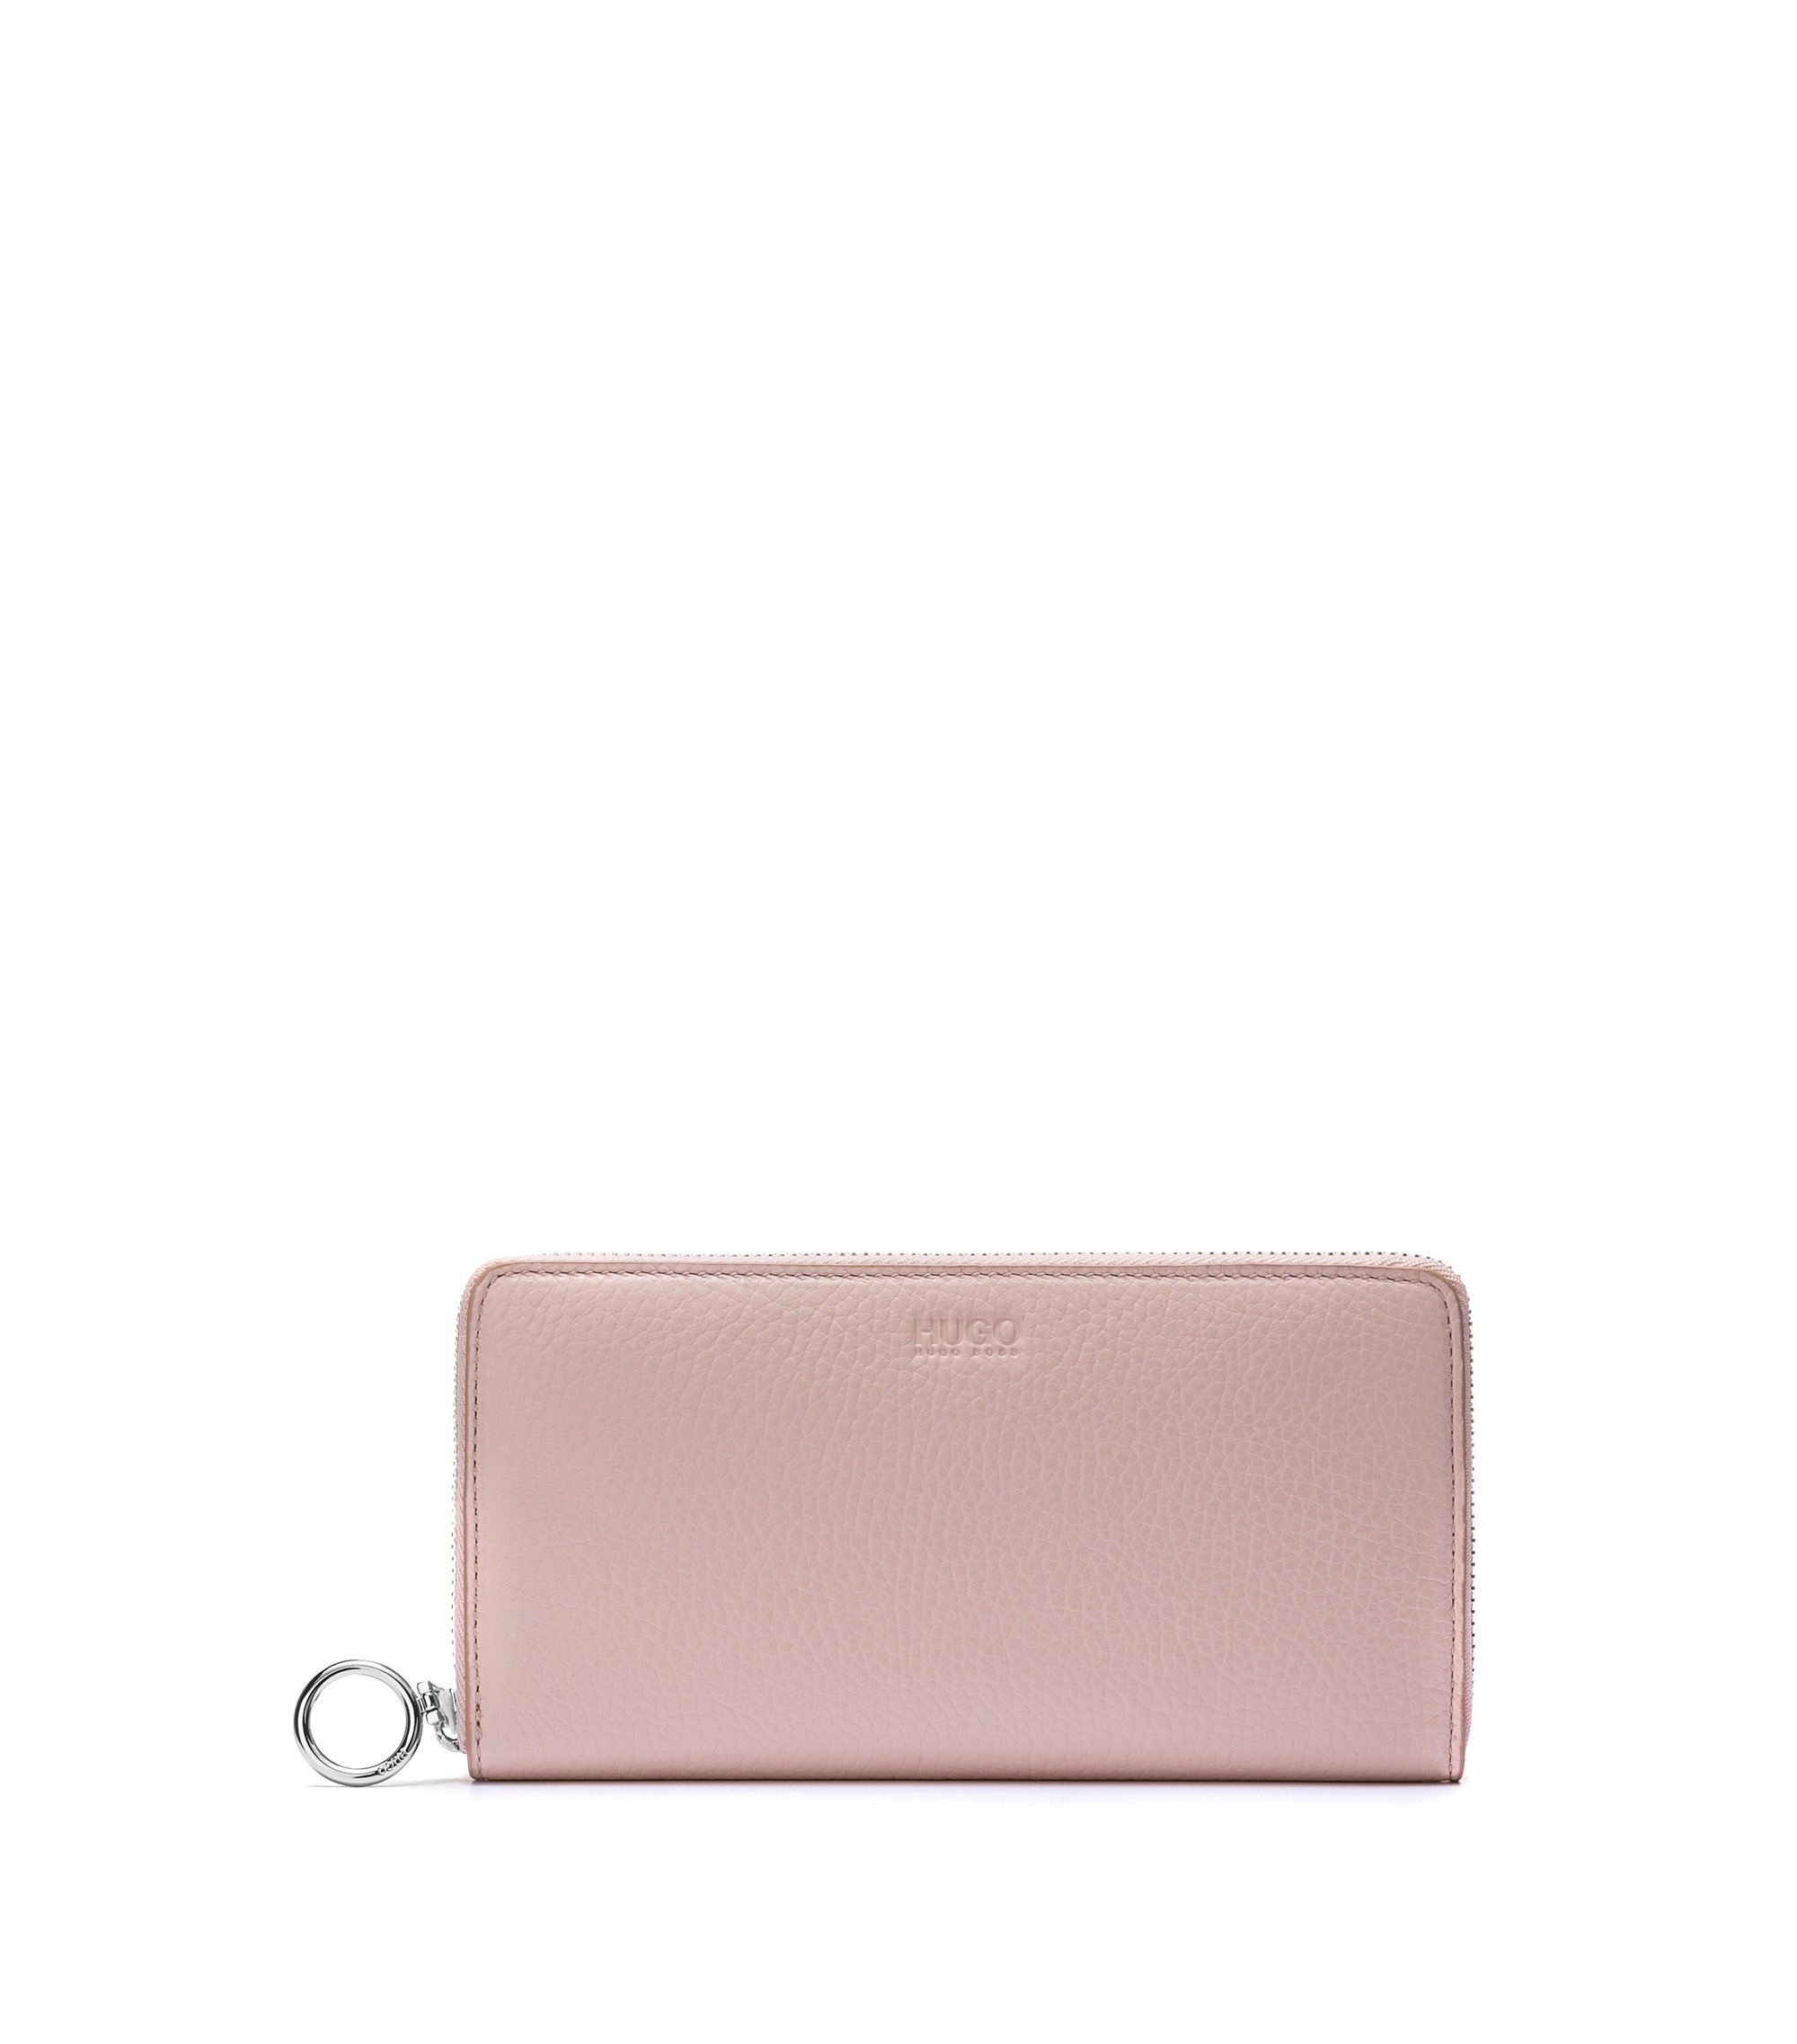 Zip-around wallet in grained leather, Light Beige